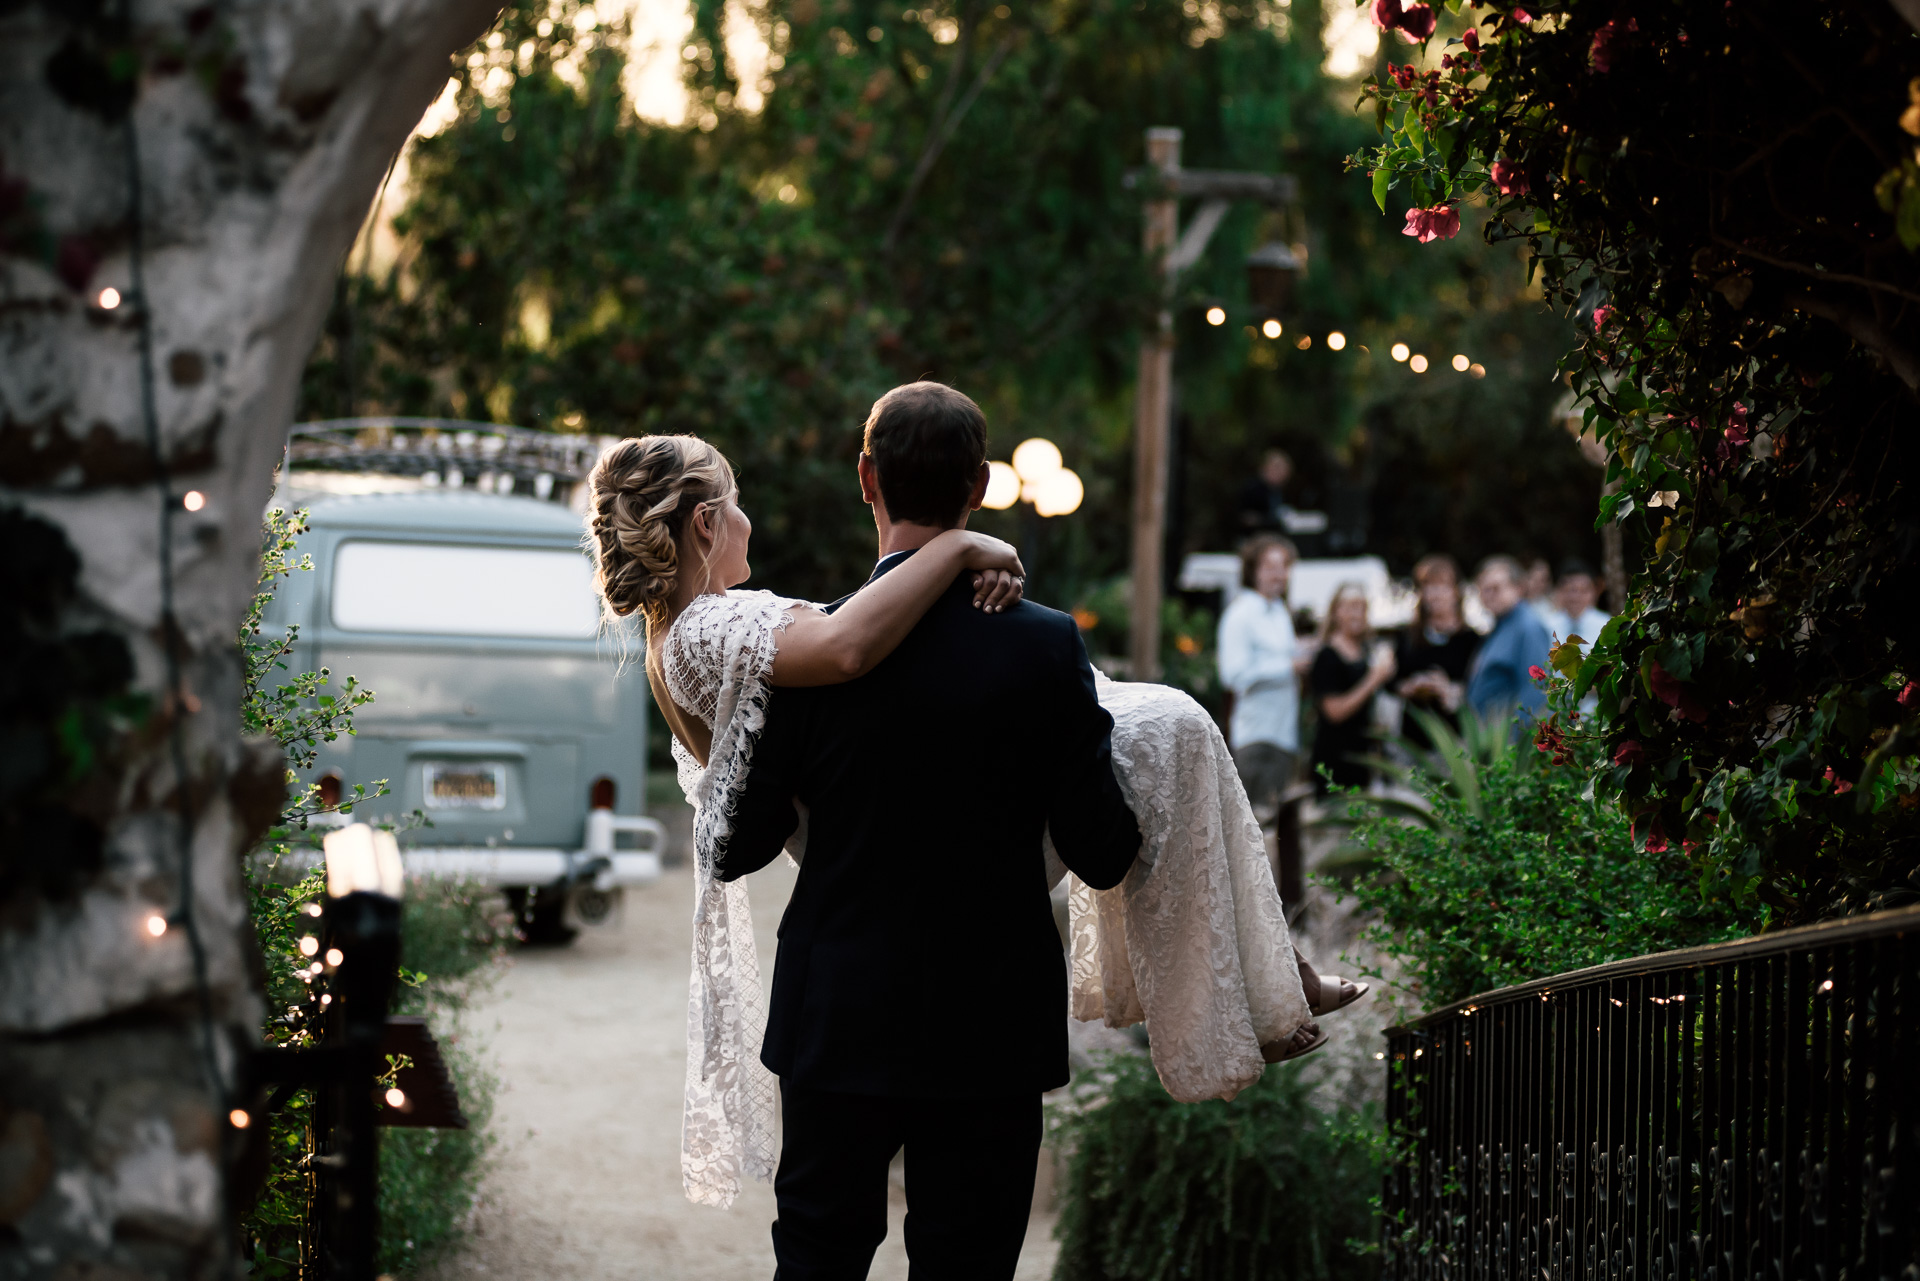 groom carries his bride to the reception captured by photographer during romantic wedding at the historic Leo Carrillo Ranch in Carlsbad California